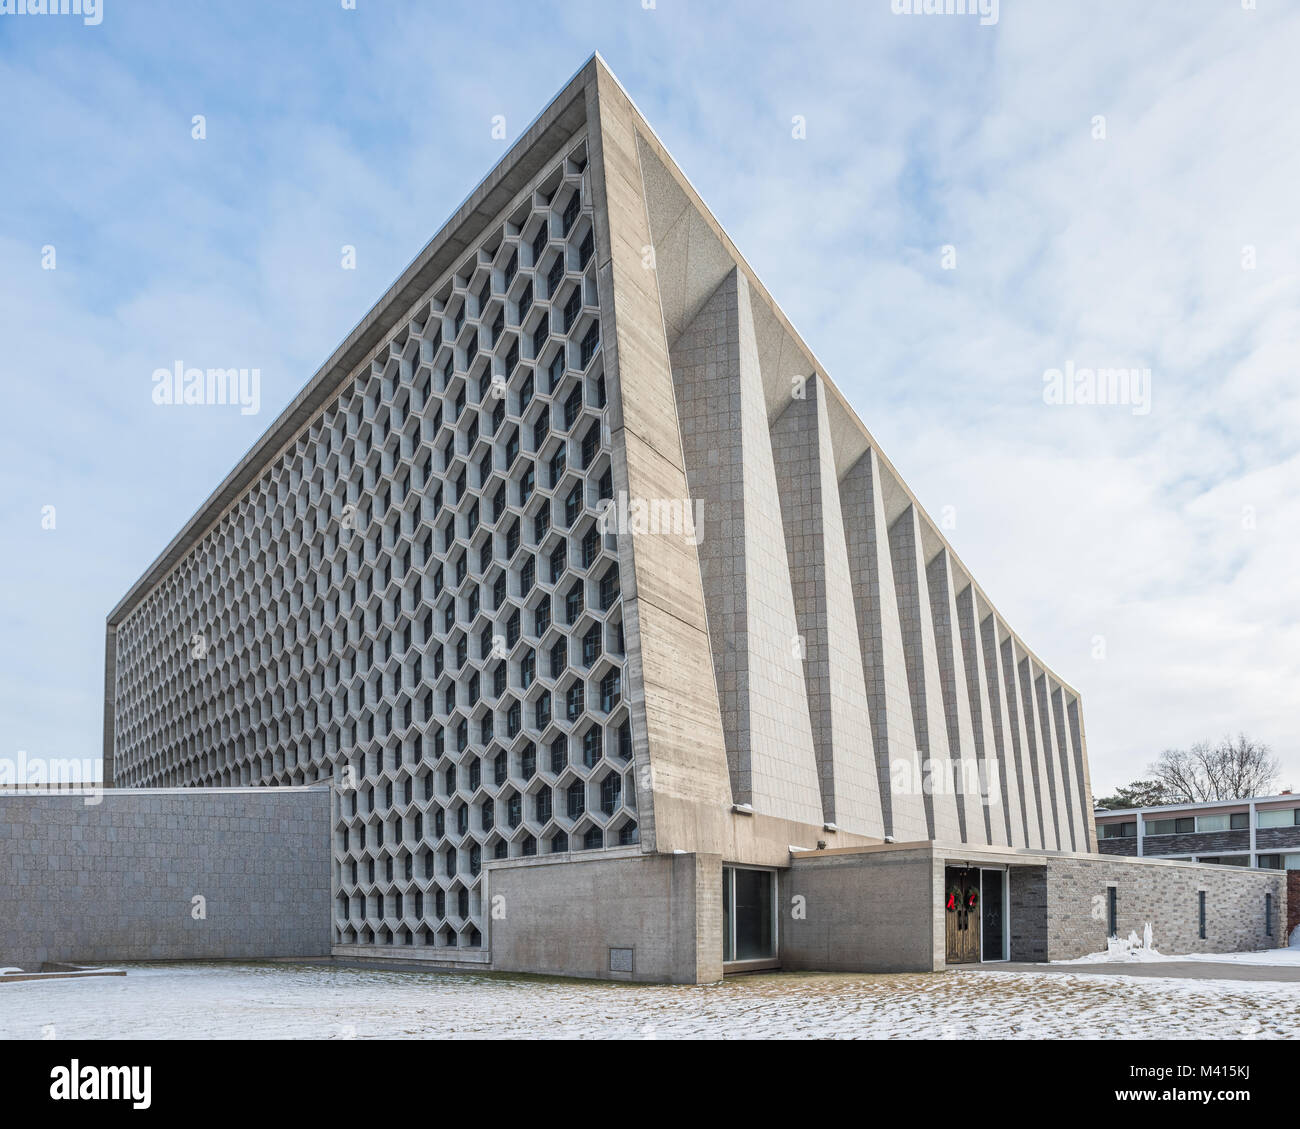 Exterior of St. John's Abbey Church, designed by Marcel Breuer - Stock Image